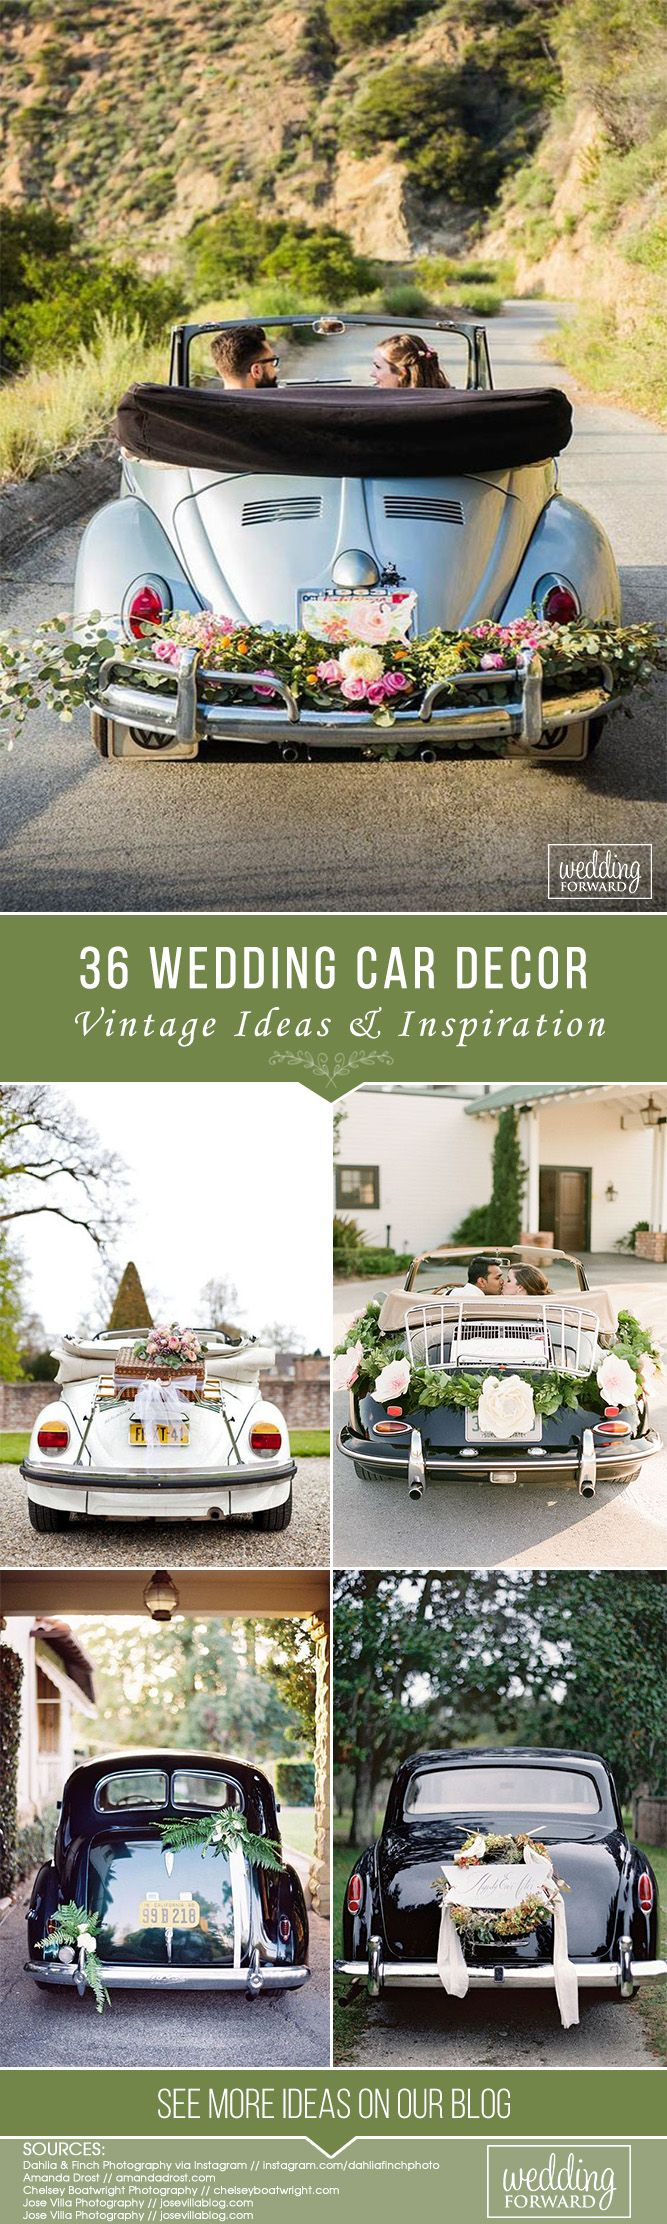 36 Vintage Wedding Car Decorations Ideas ❤  See more: http://www.weddingforward.com/wedding-car-decorations/ #wedding #bride #weddingdecor #weddingdecorations #weddingcardecorations